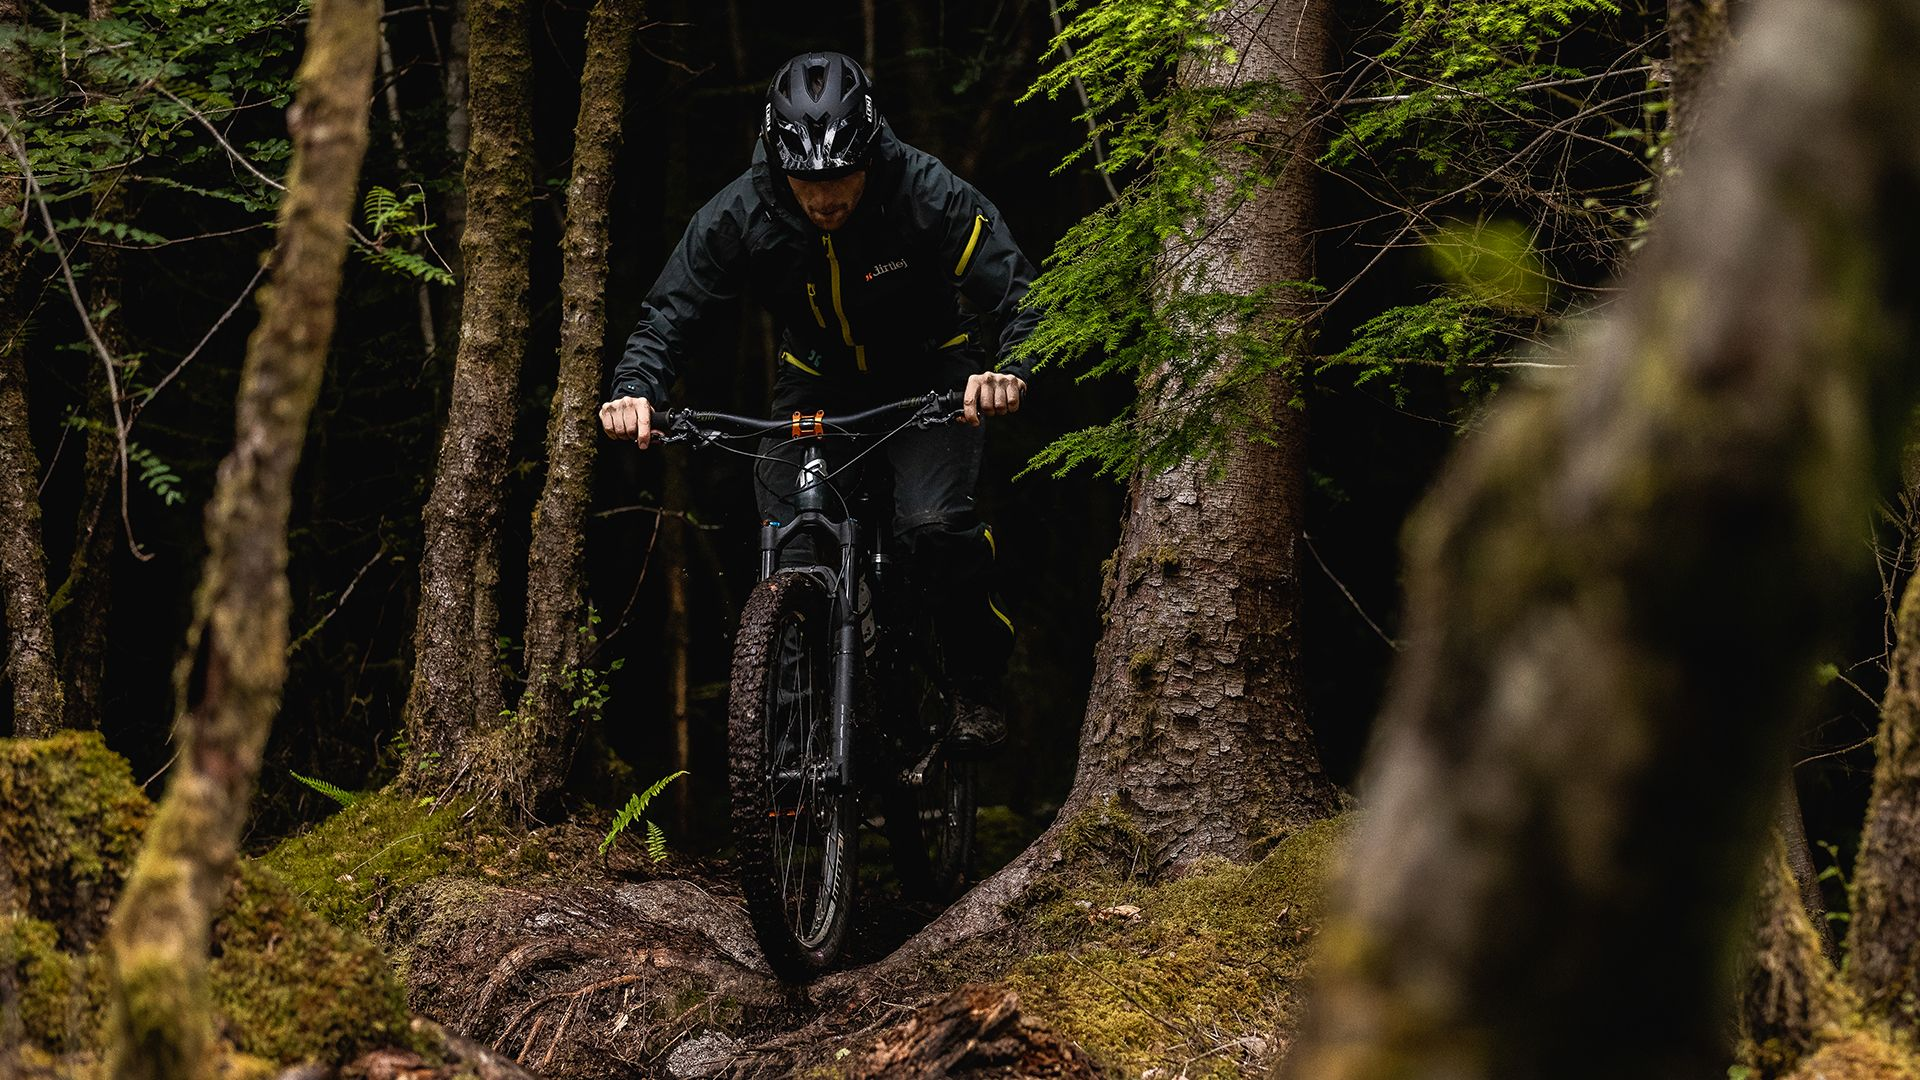 dirtlej - dirtsuit core edition